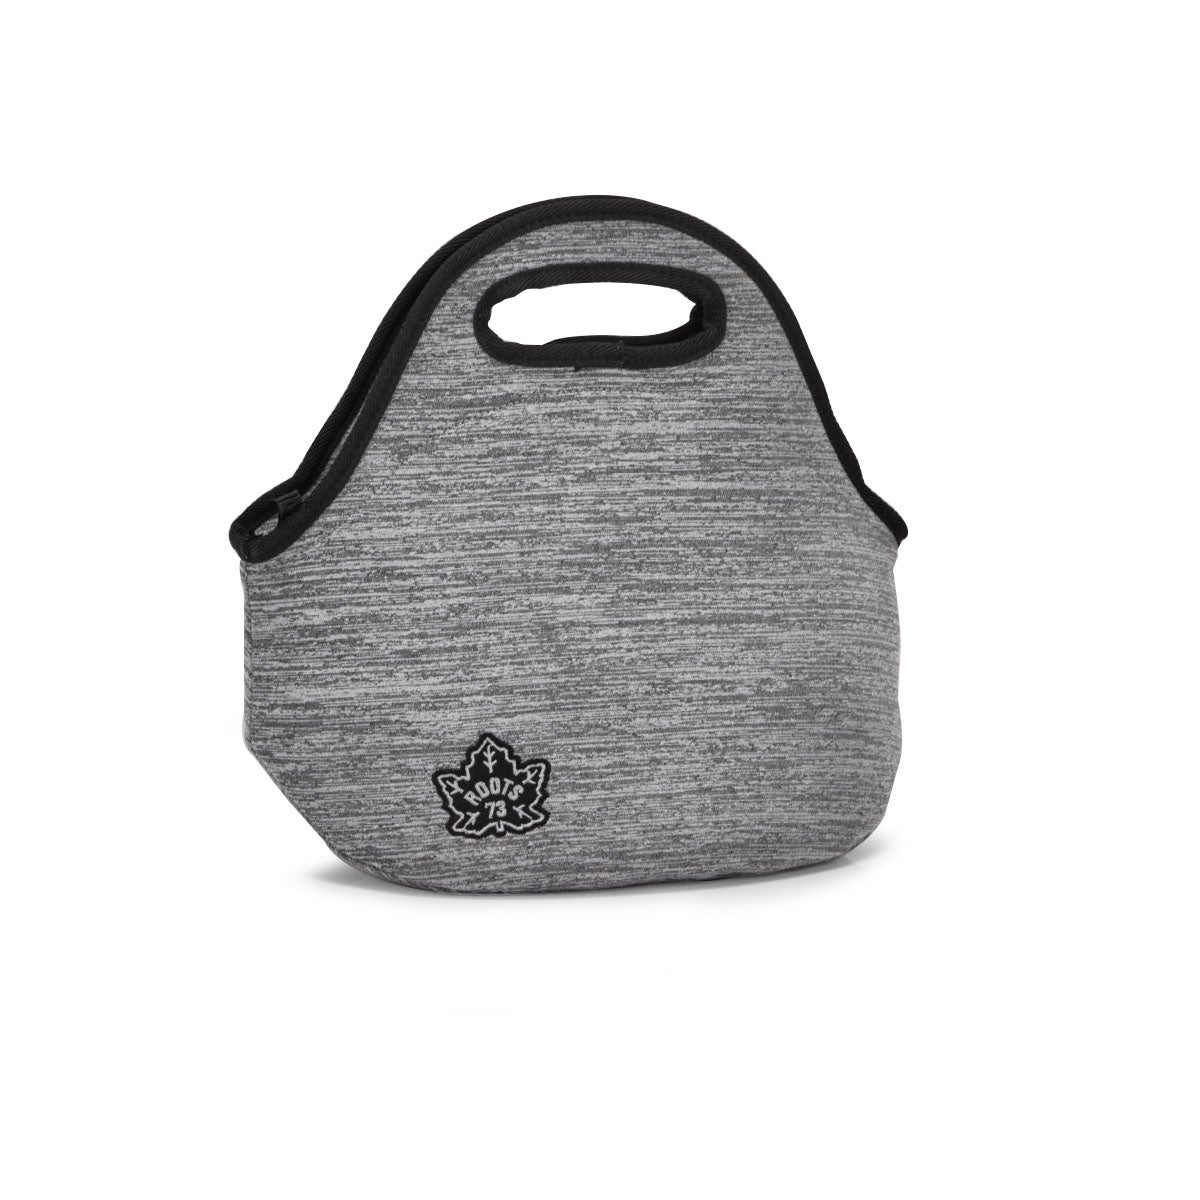 Lds Roots73 grey cooler bag